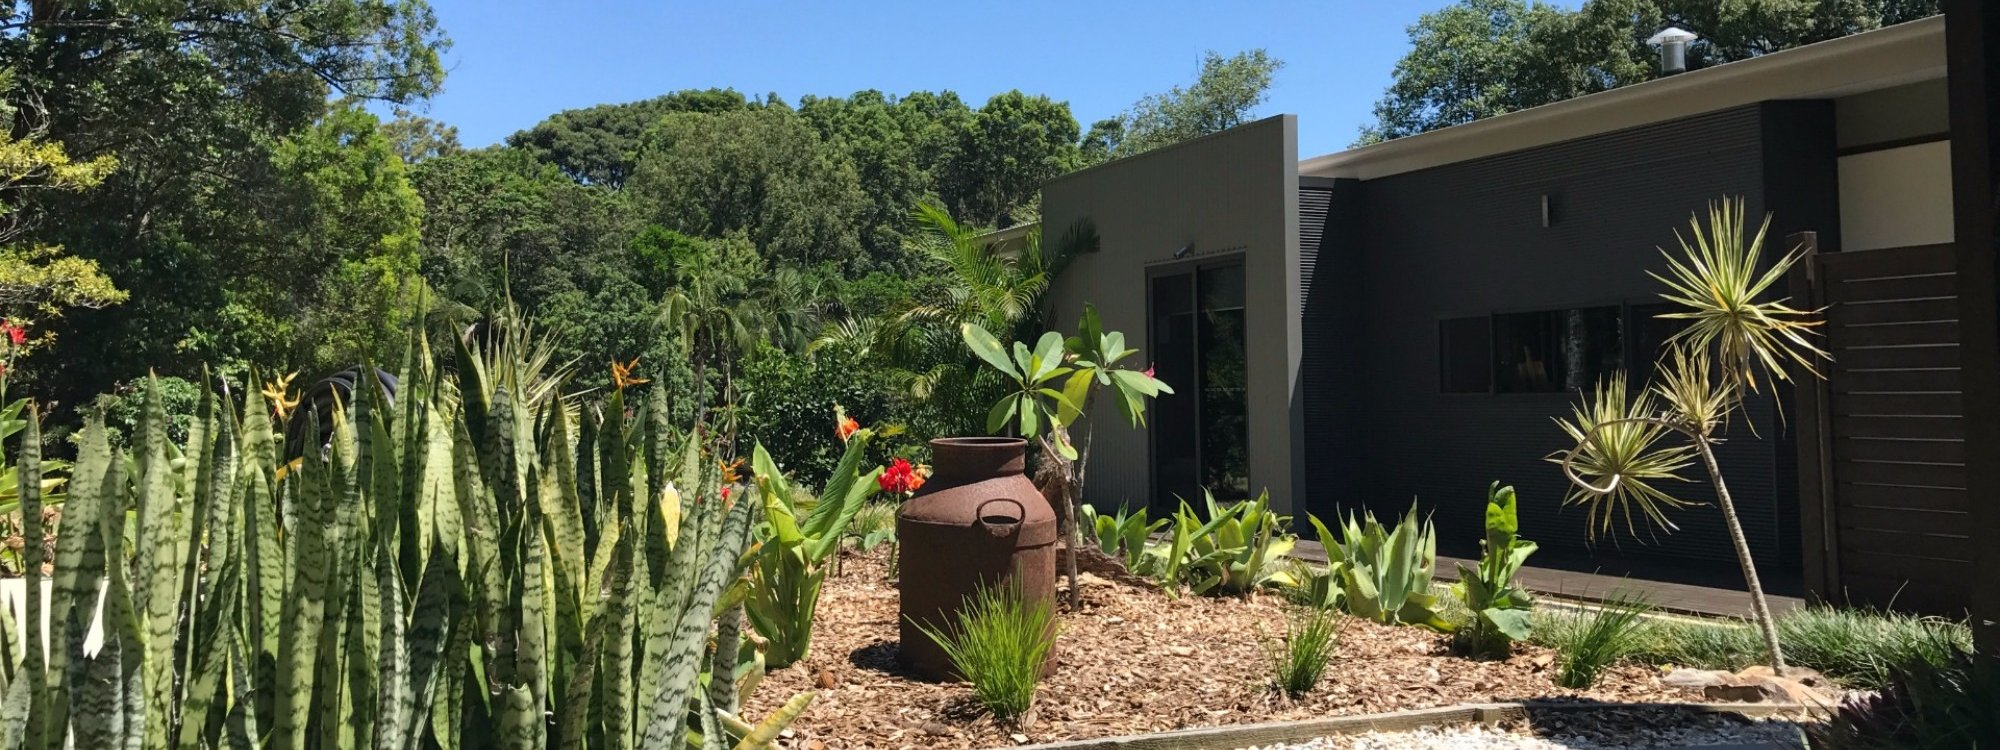 Tropical gardens with rustic farm equipment are located opposite the outdoor shower and laundry.